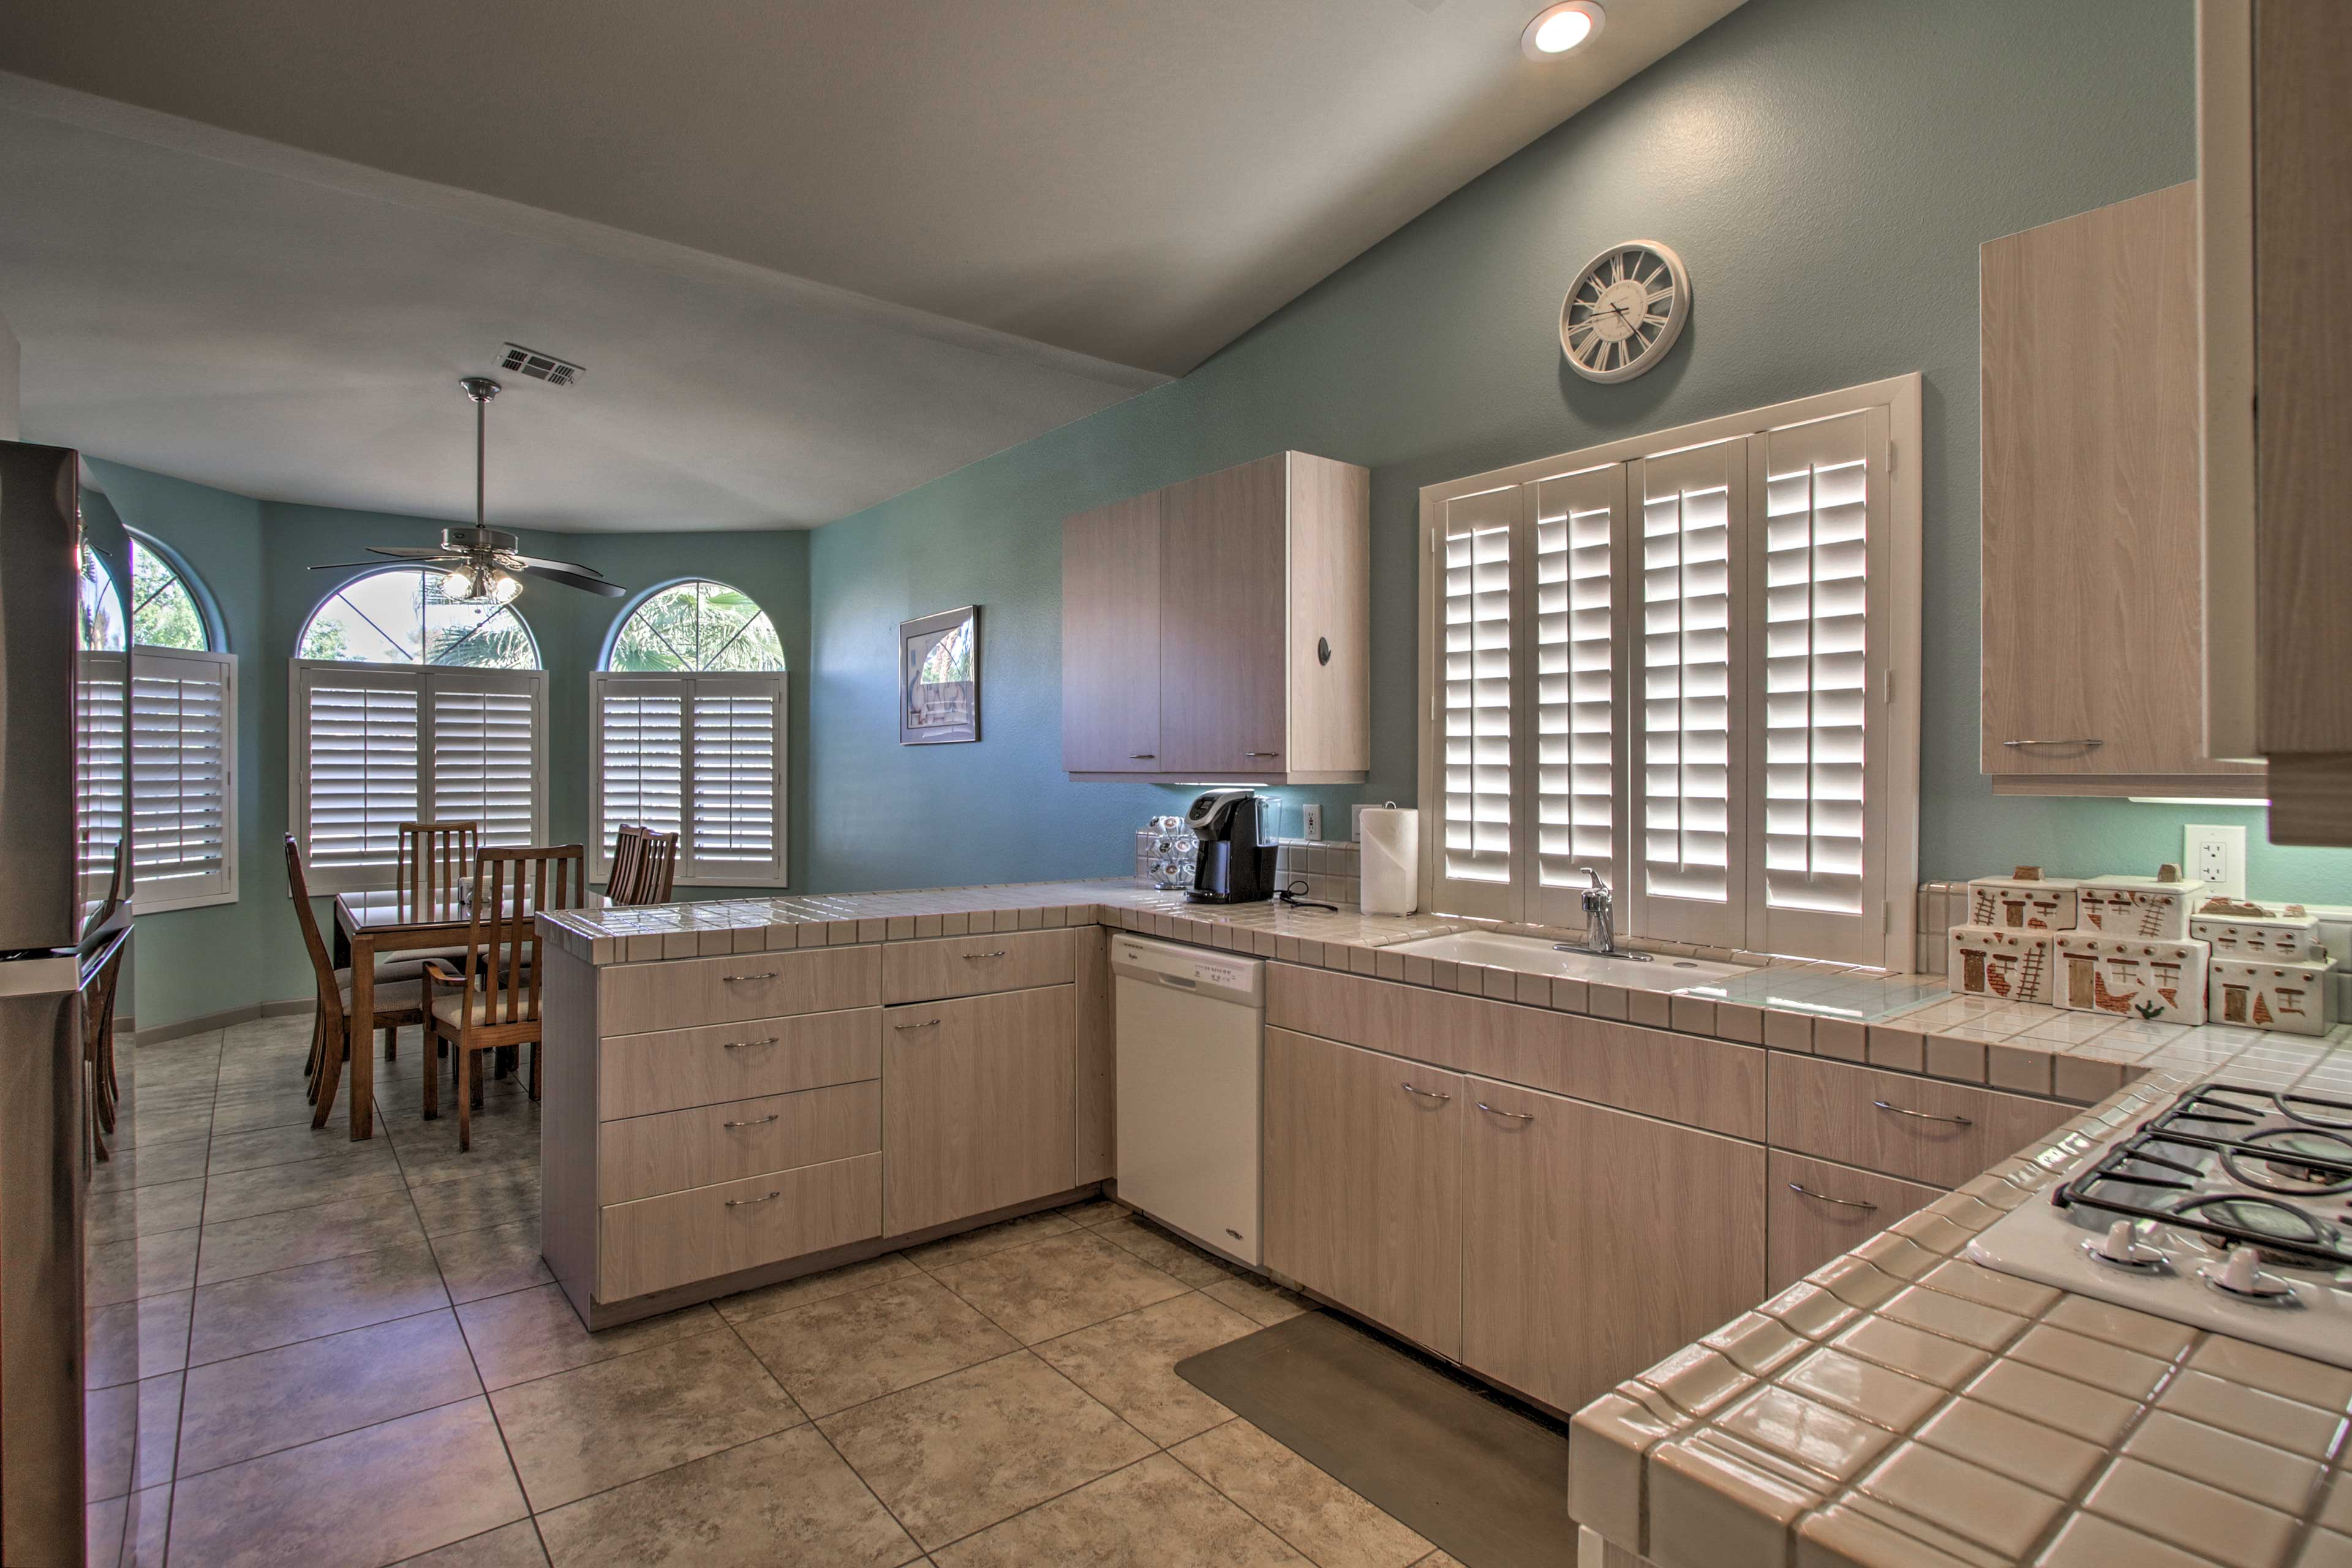 The fully equipped kitchen is perfect for preparing tasty recipes.